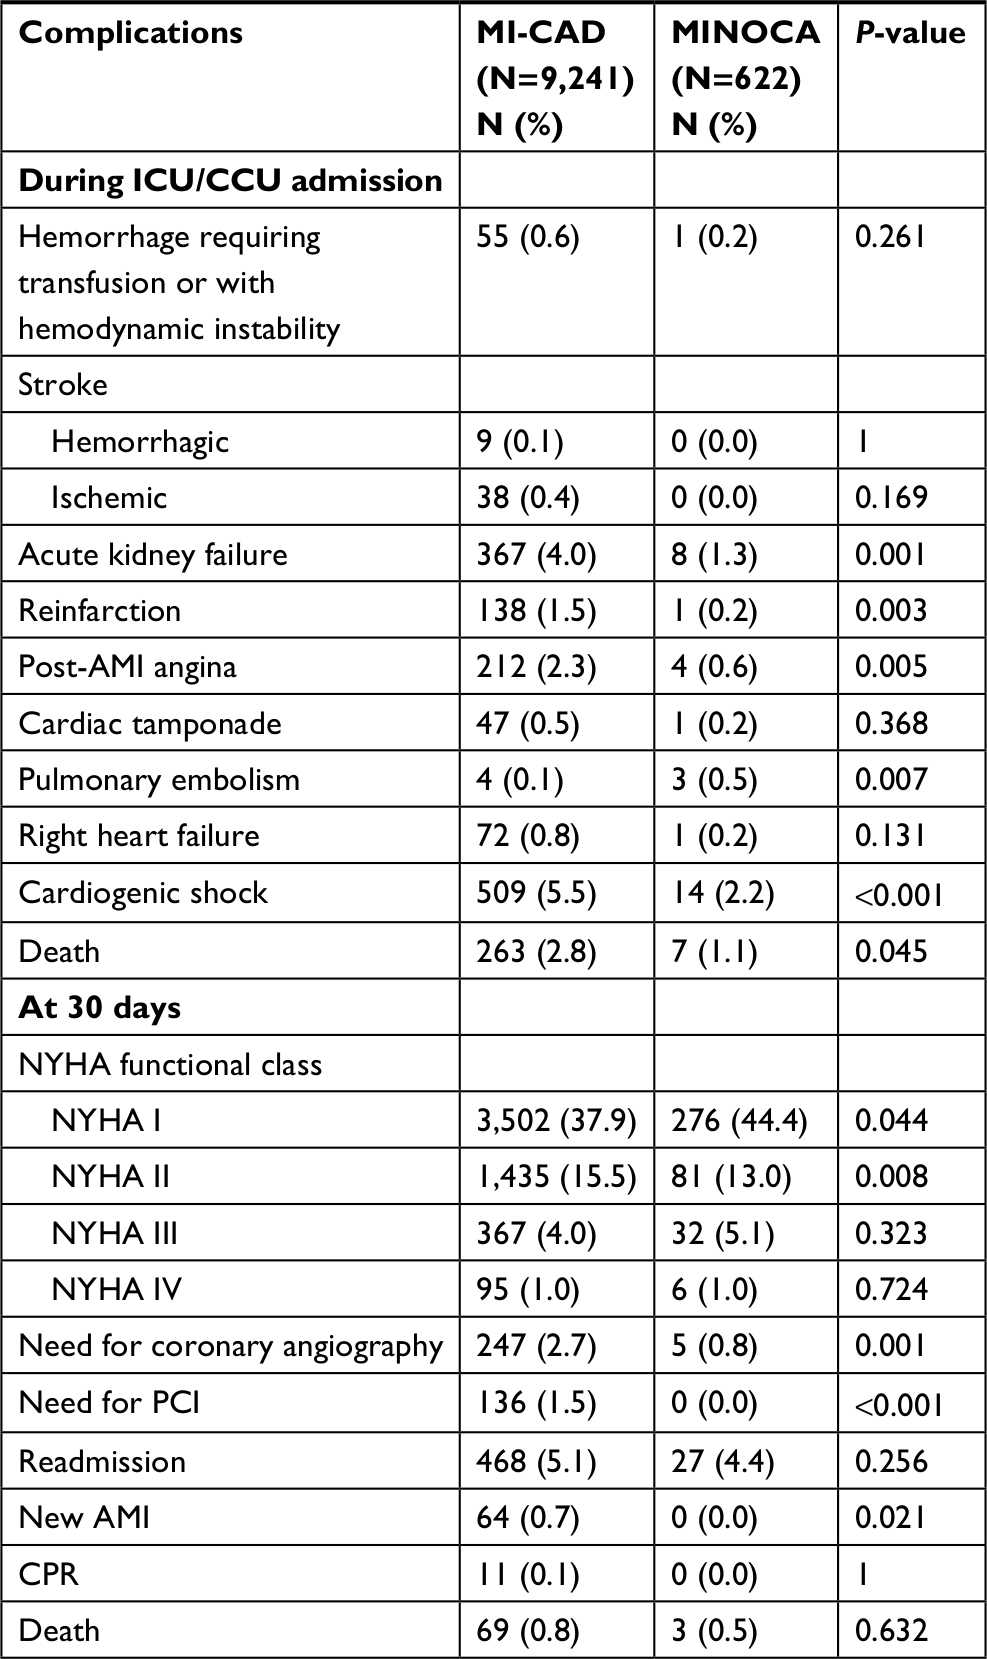 Full text] Characteristics of patients with myocardial